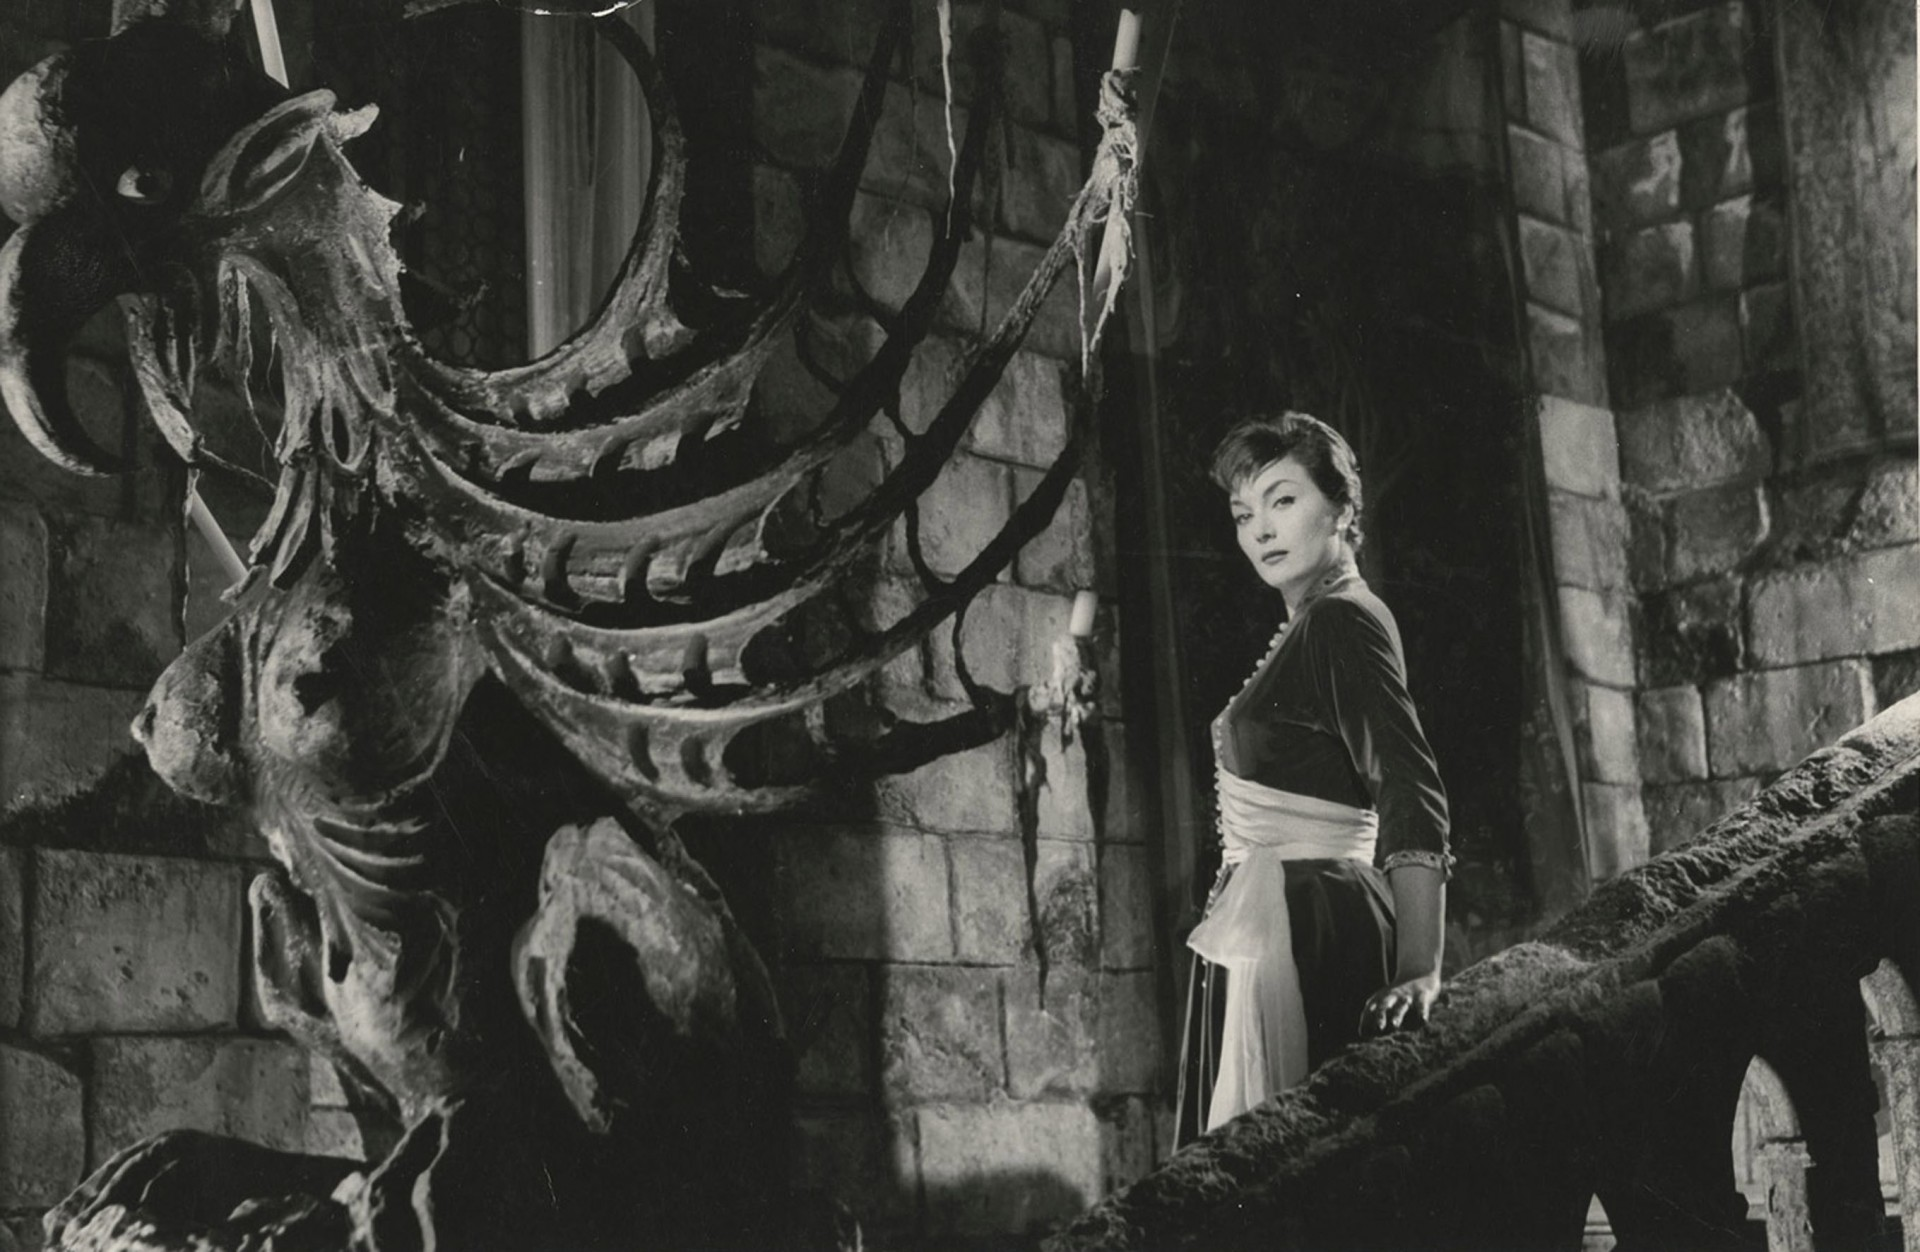 Gianna Maria Canale amid Gothic castle setting in I Vampiri (1957)